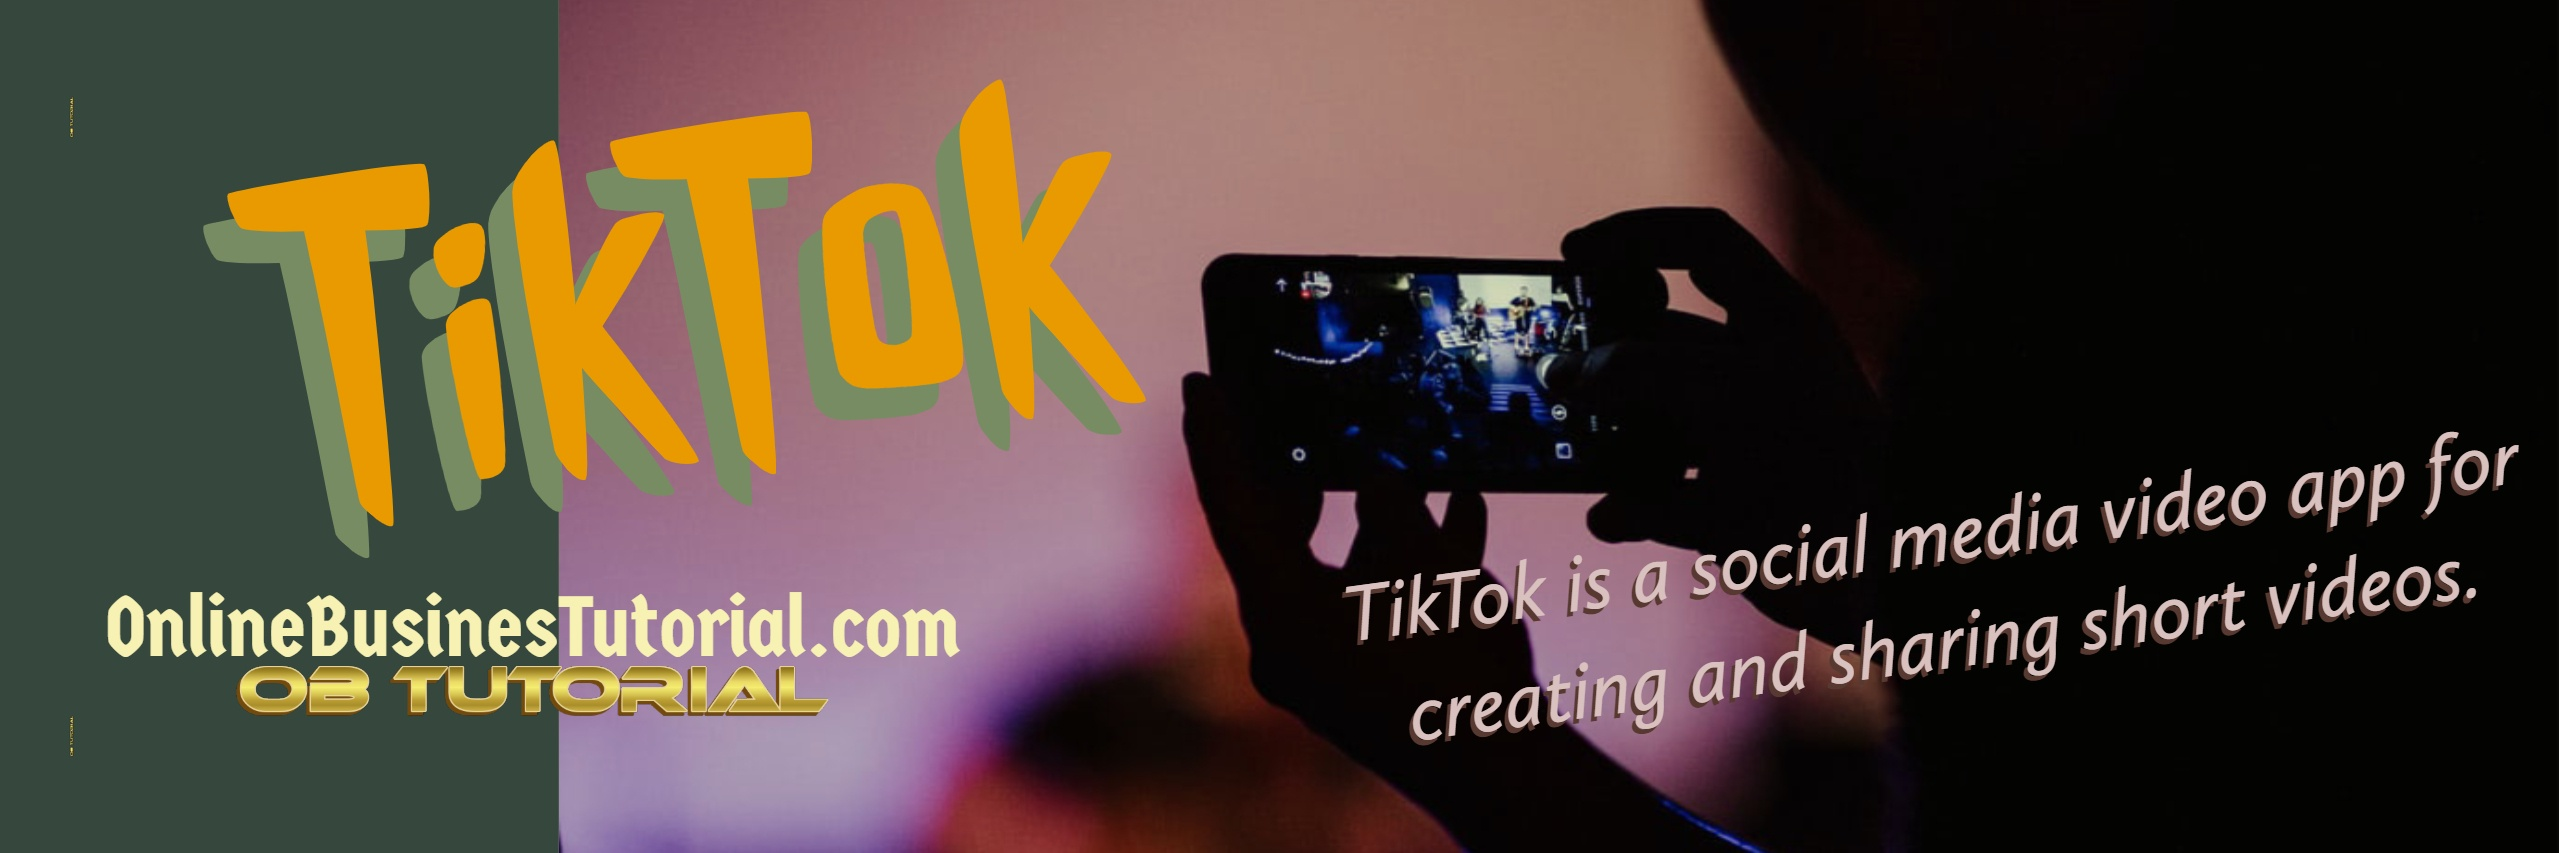 TikTok is the destination for short-form mobile videos. Our mission is to capture and present the world's creativity, knowledge, and precious life moments